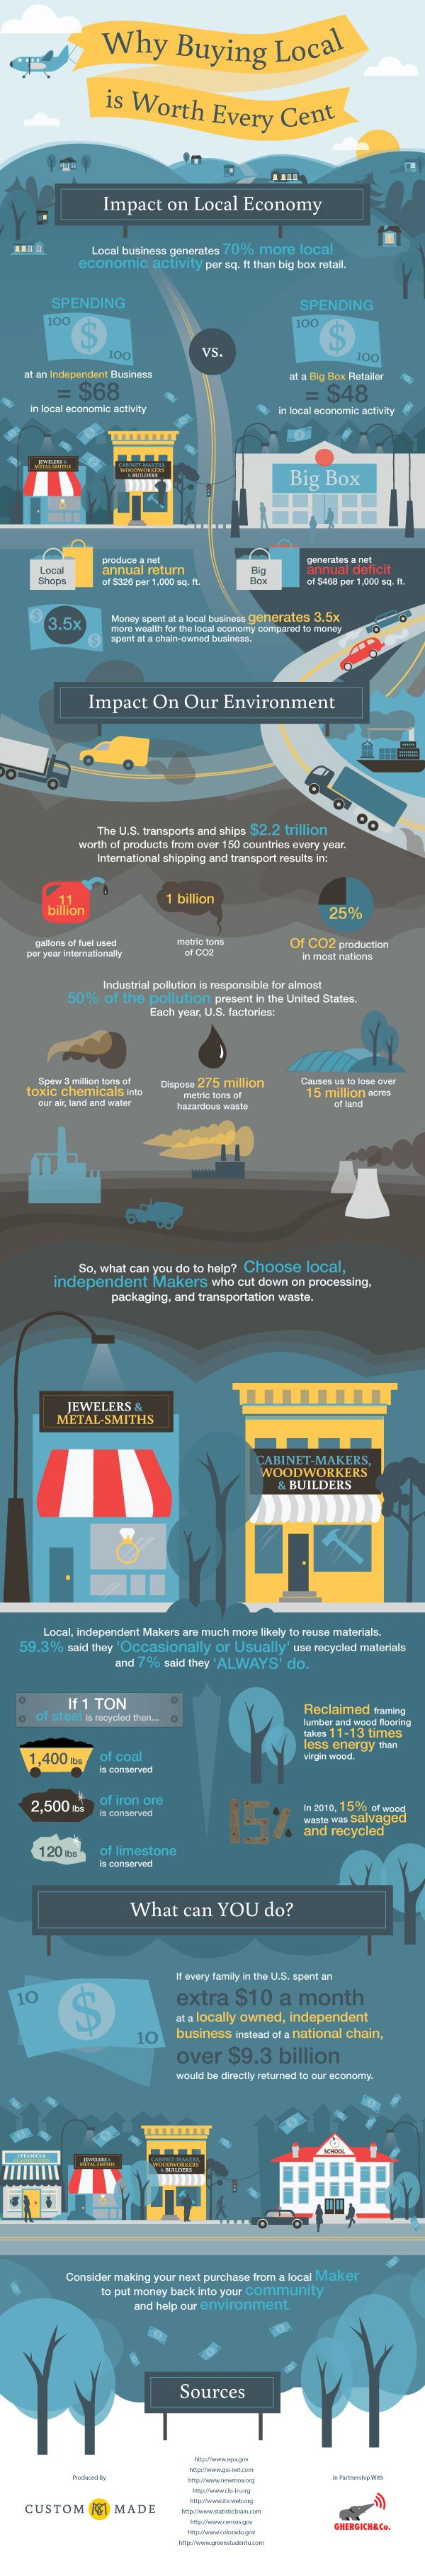 Why buying local is worth every cent via @CustomMade.